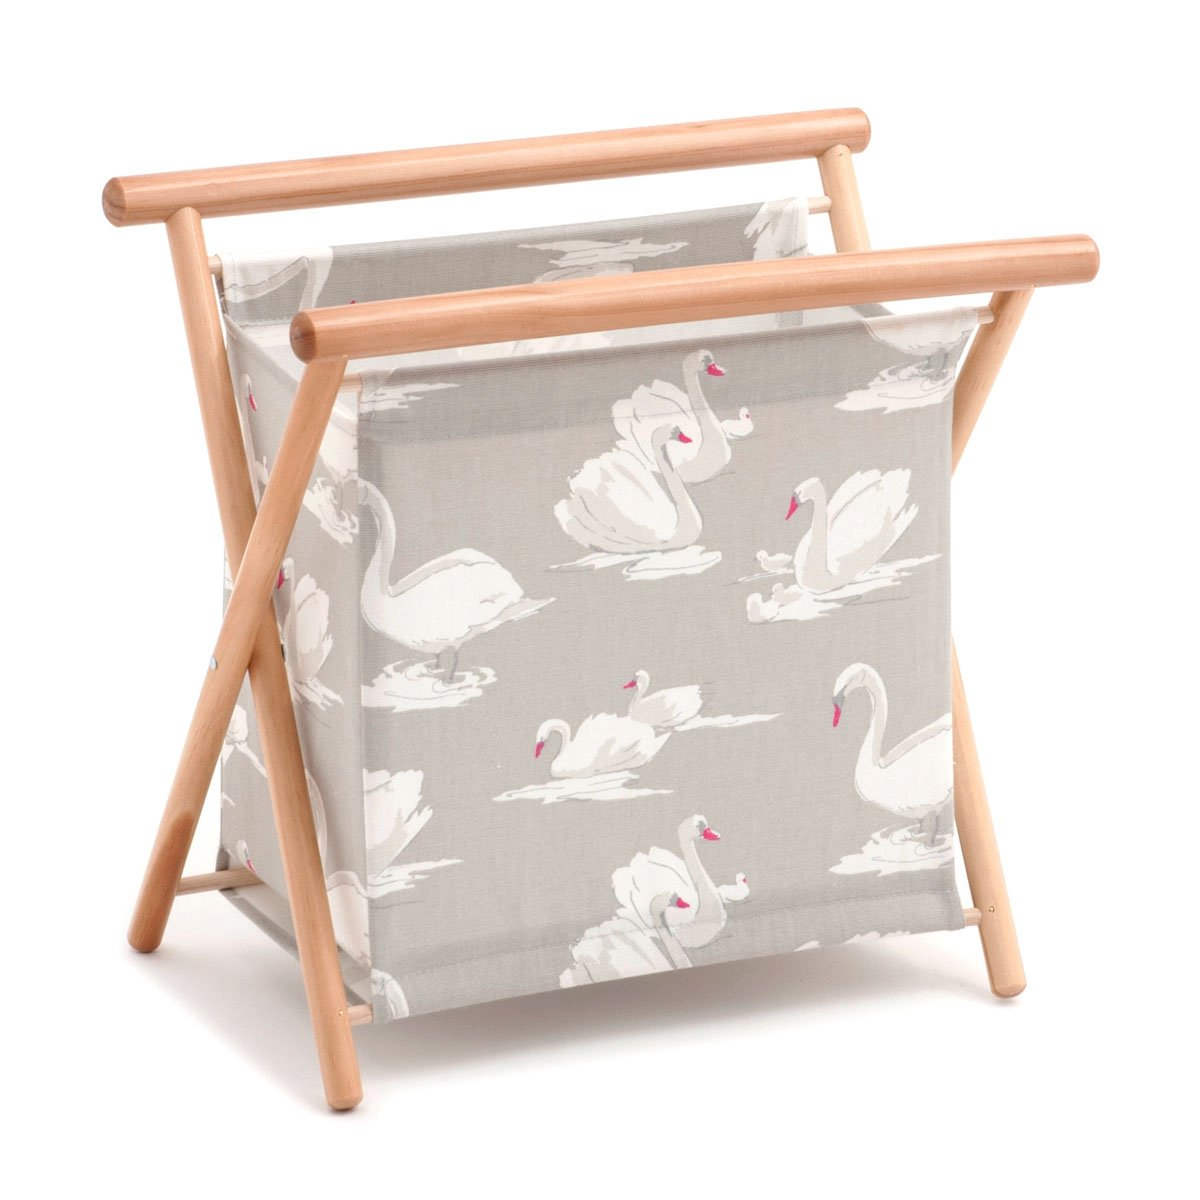 Hobby Gift Swans Pebble Sewing Basket 23 x 36 x 36cm d//w//h